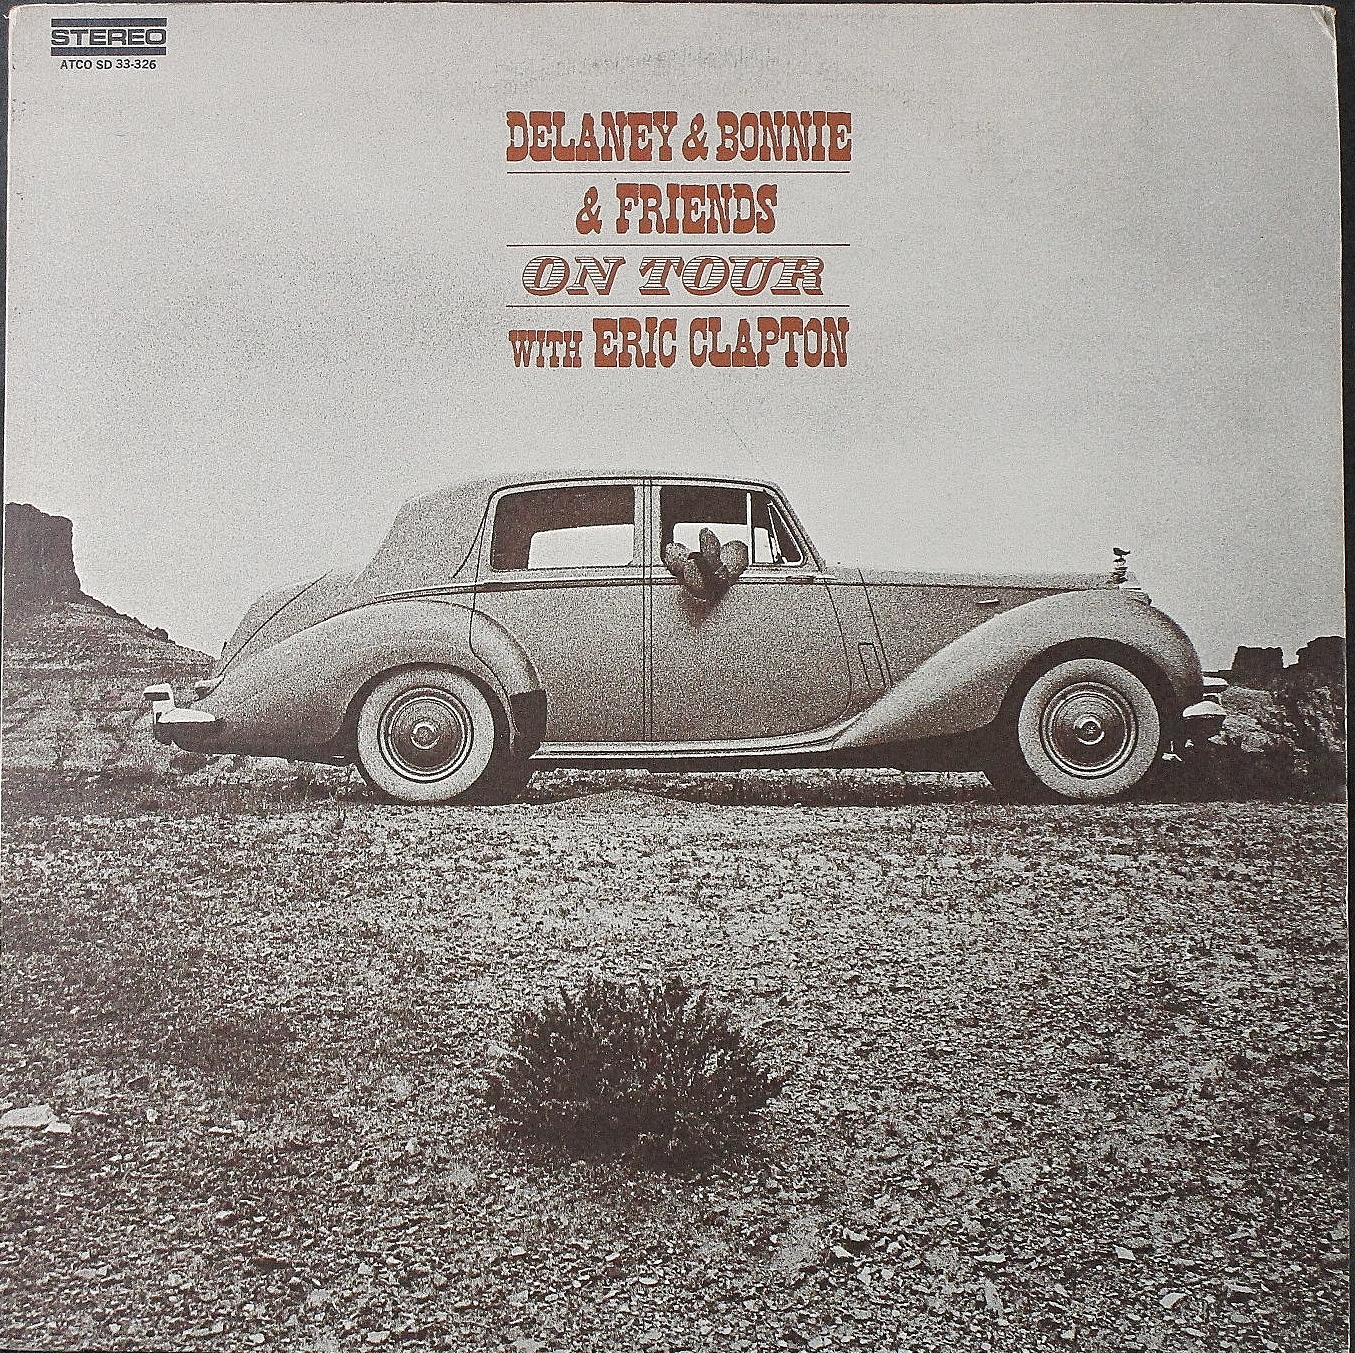 Delaney & Bonnie & Friends With Eric Clapton デラニー& ボニー・ウイズ・エリック・クラプトン / On Tour